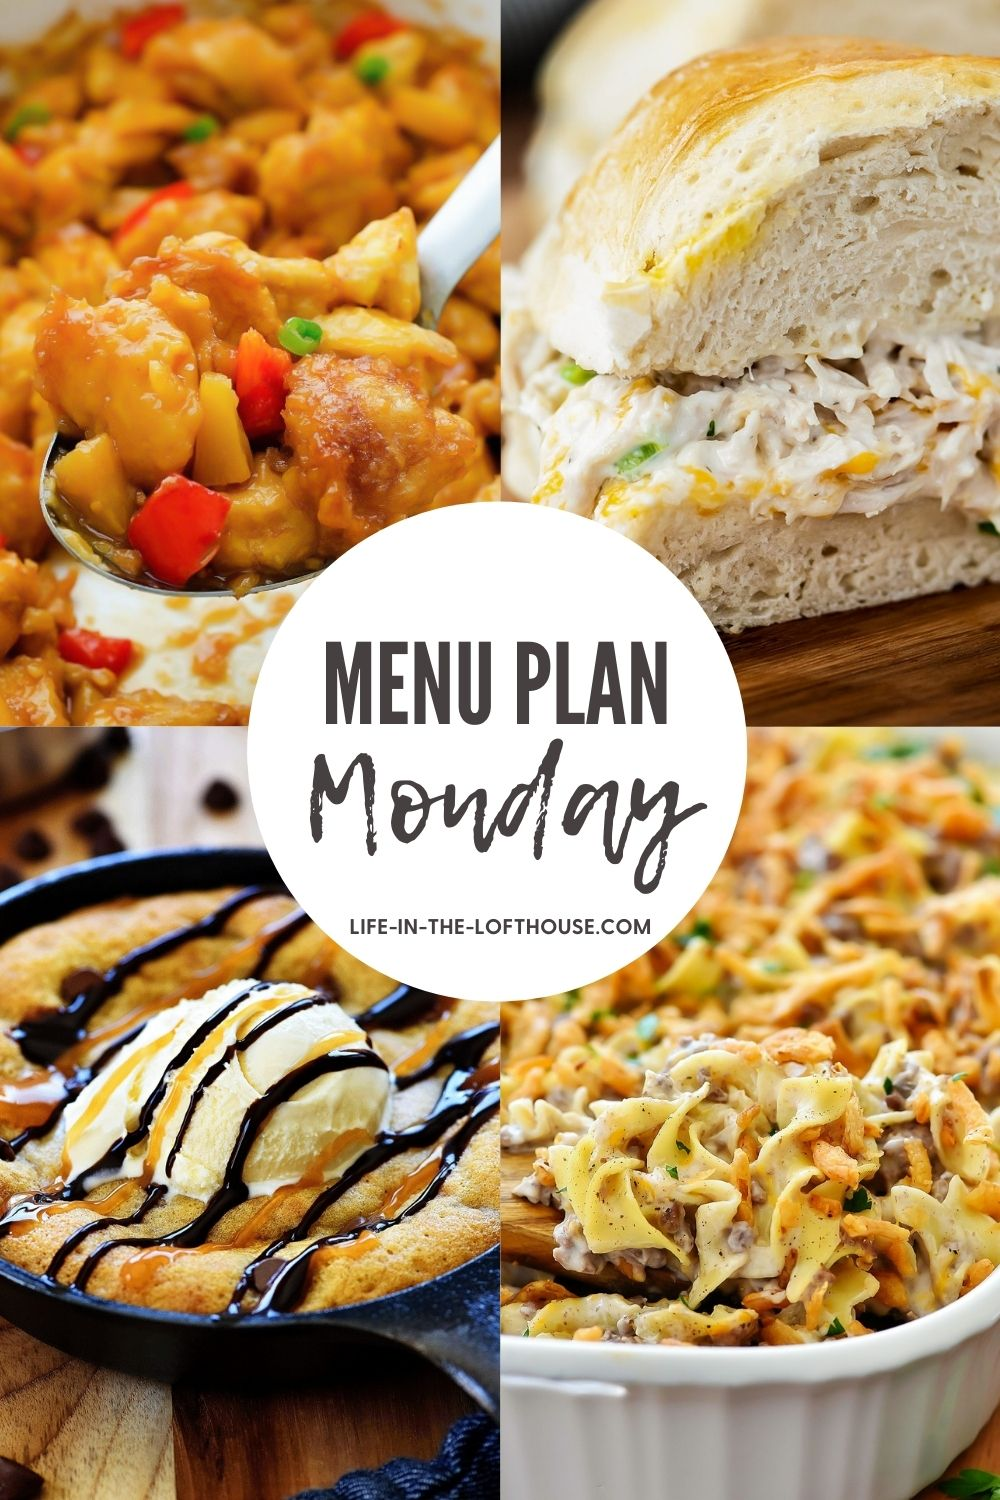 Menu Plan Monday is a collection of family favorite recipes from dinner to dessert.